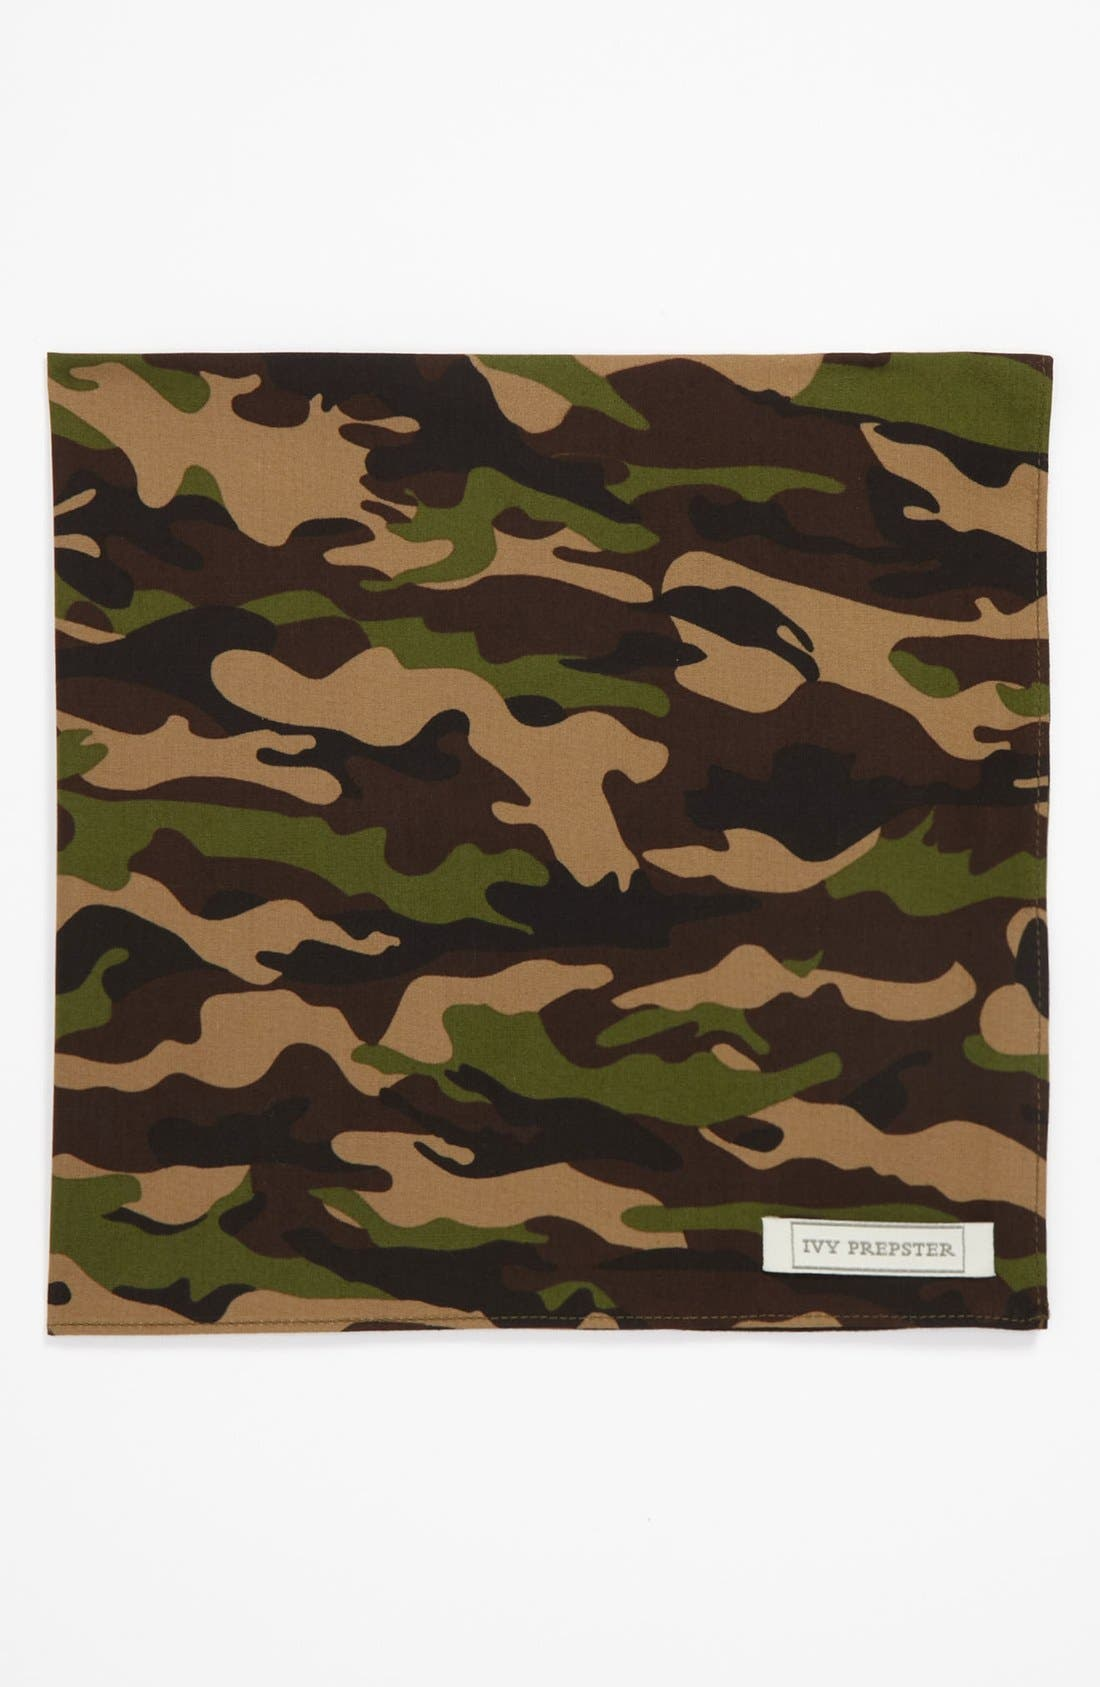 Alternate Image 1 Selected - Ivy Prepster 'Reflect Camouflage' Pocket Square